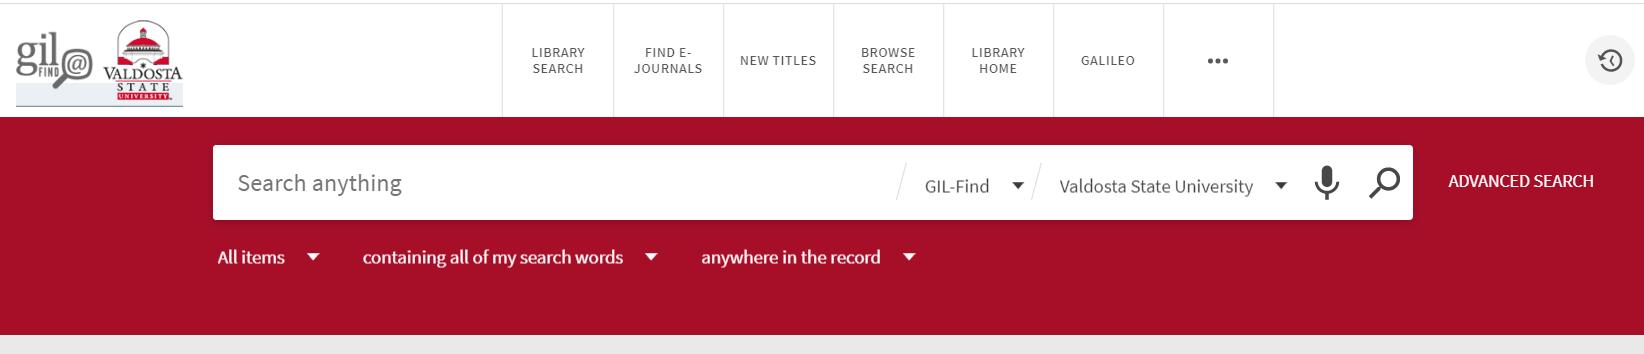 Simple search in library catalog